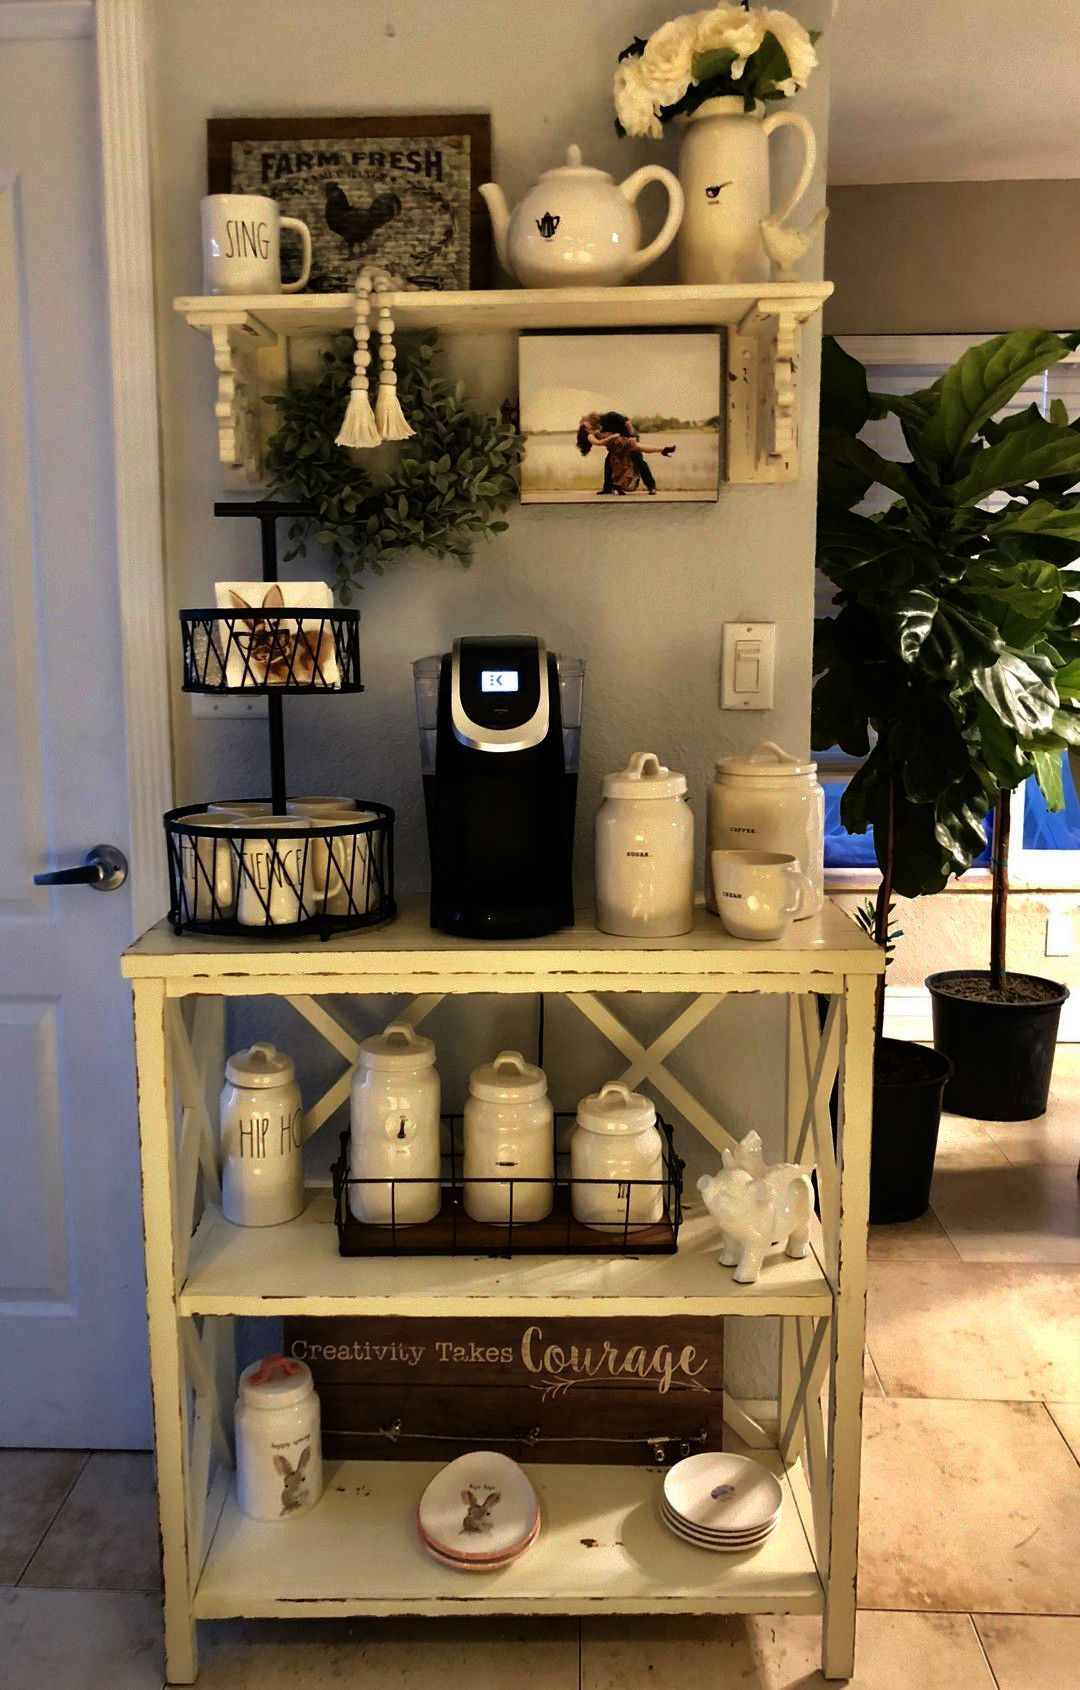 Coffee Near Me Takeaway Whenever Coffee Machine And Espresso Once Coffee N Clothes Their Coffee Shop So Coffee Bar Home Diy Coffee Station Home Coffee Stations